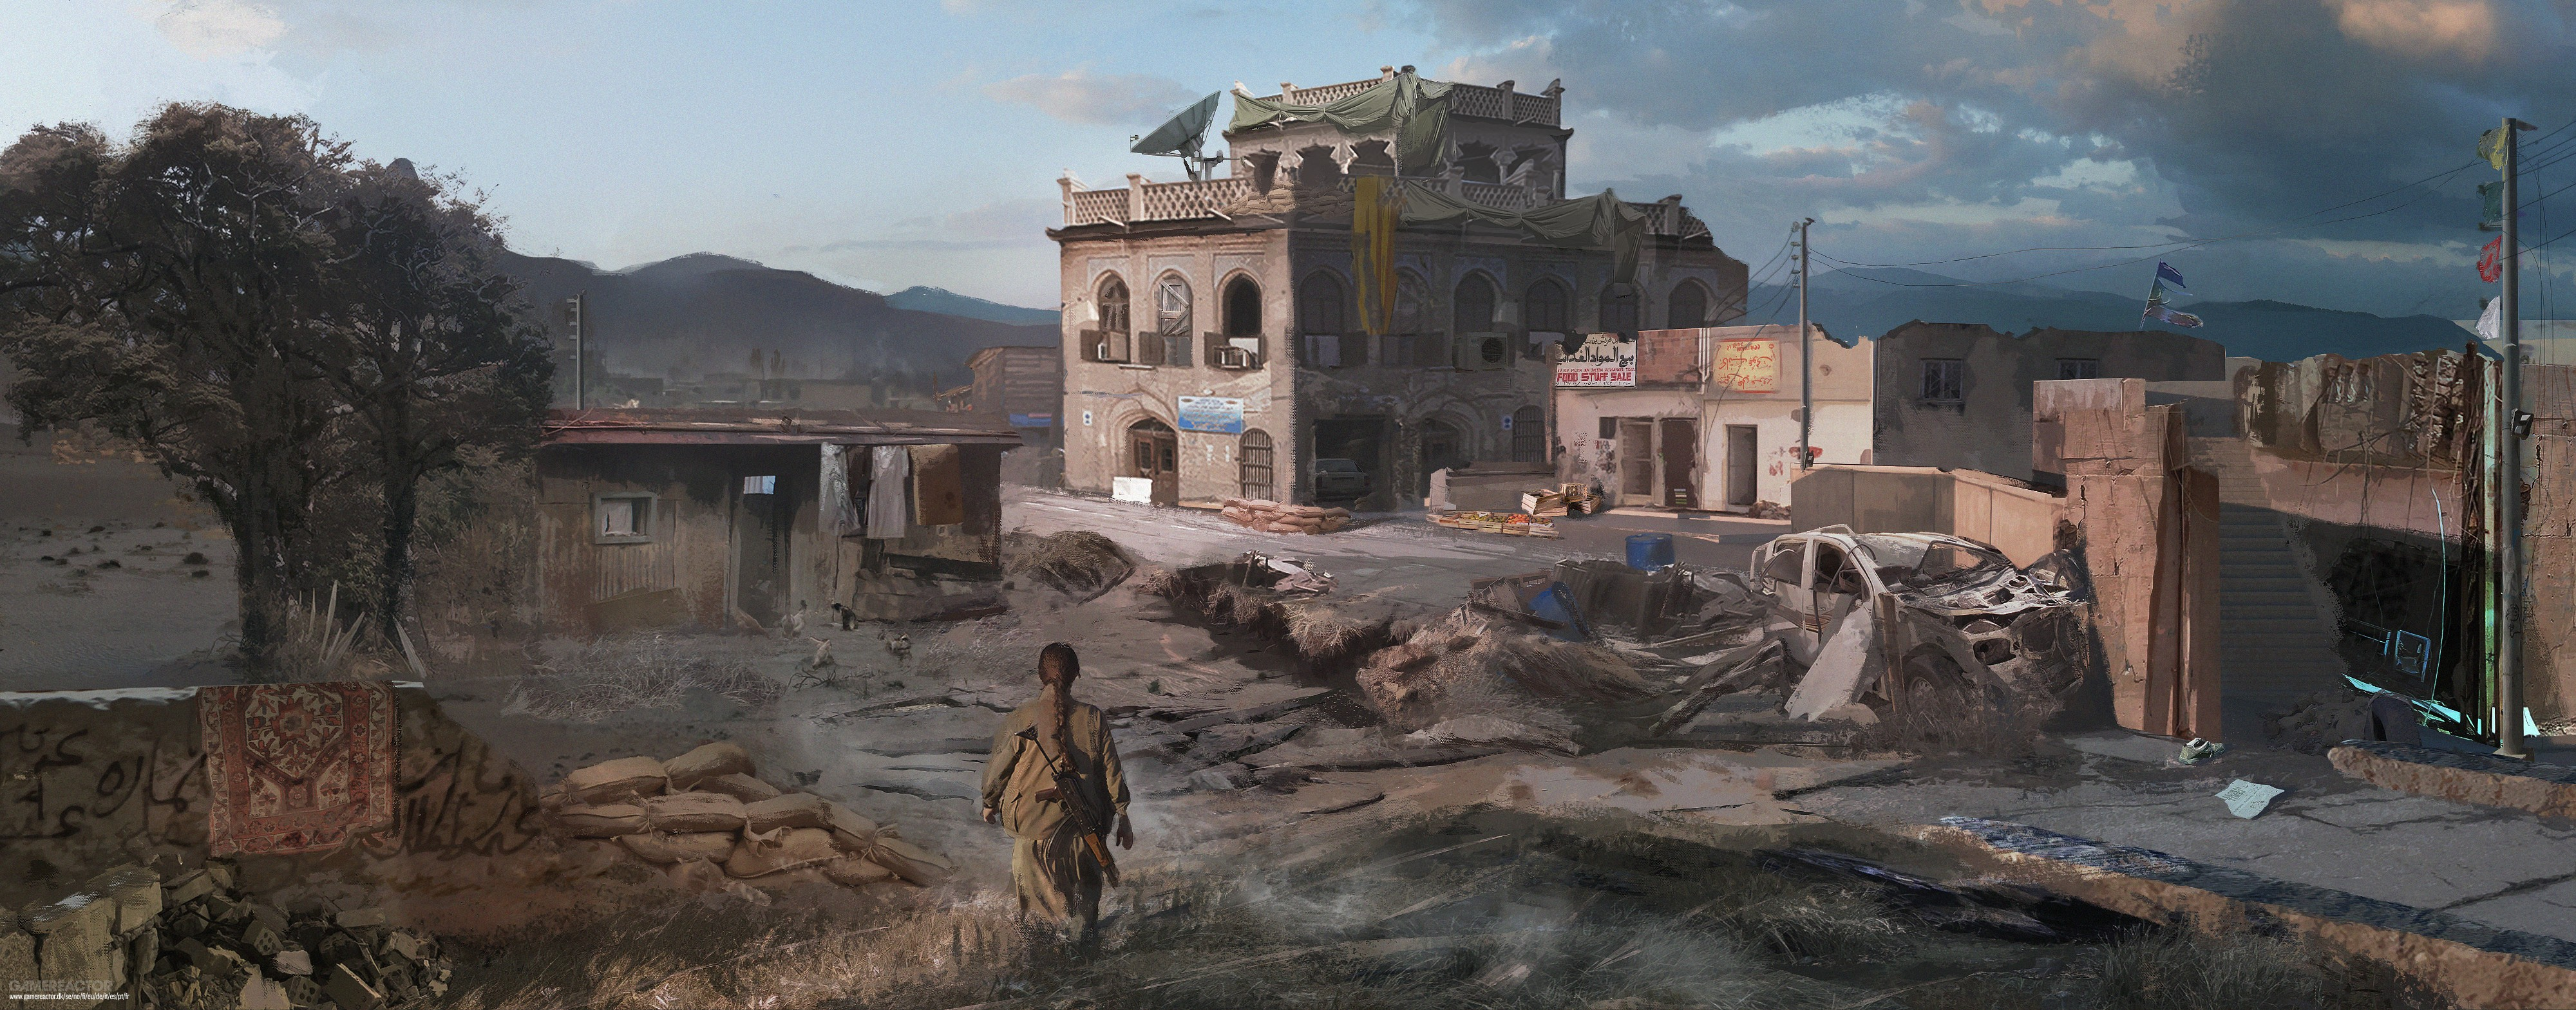 Pictures of Insurgency: Sandstorm to